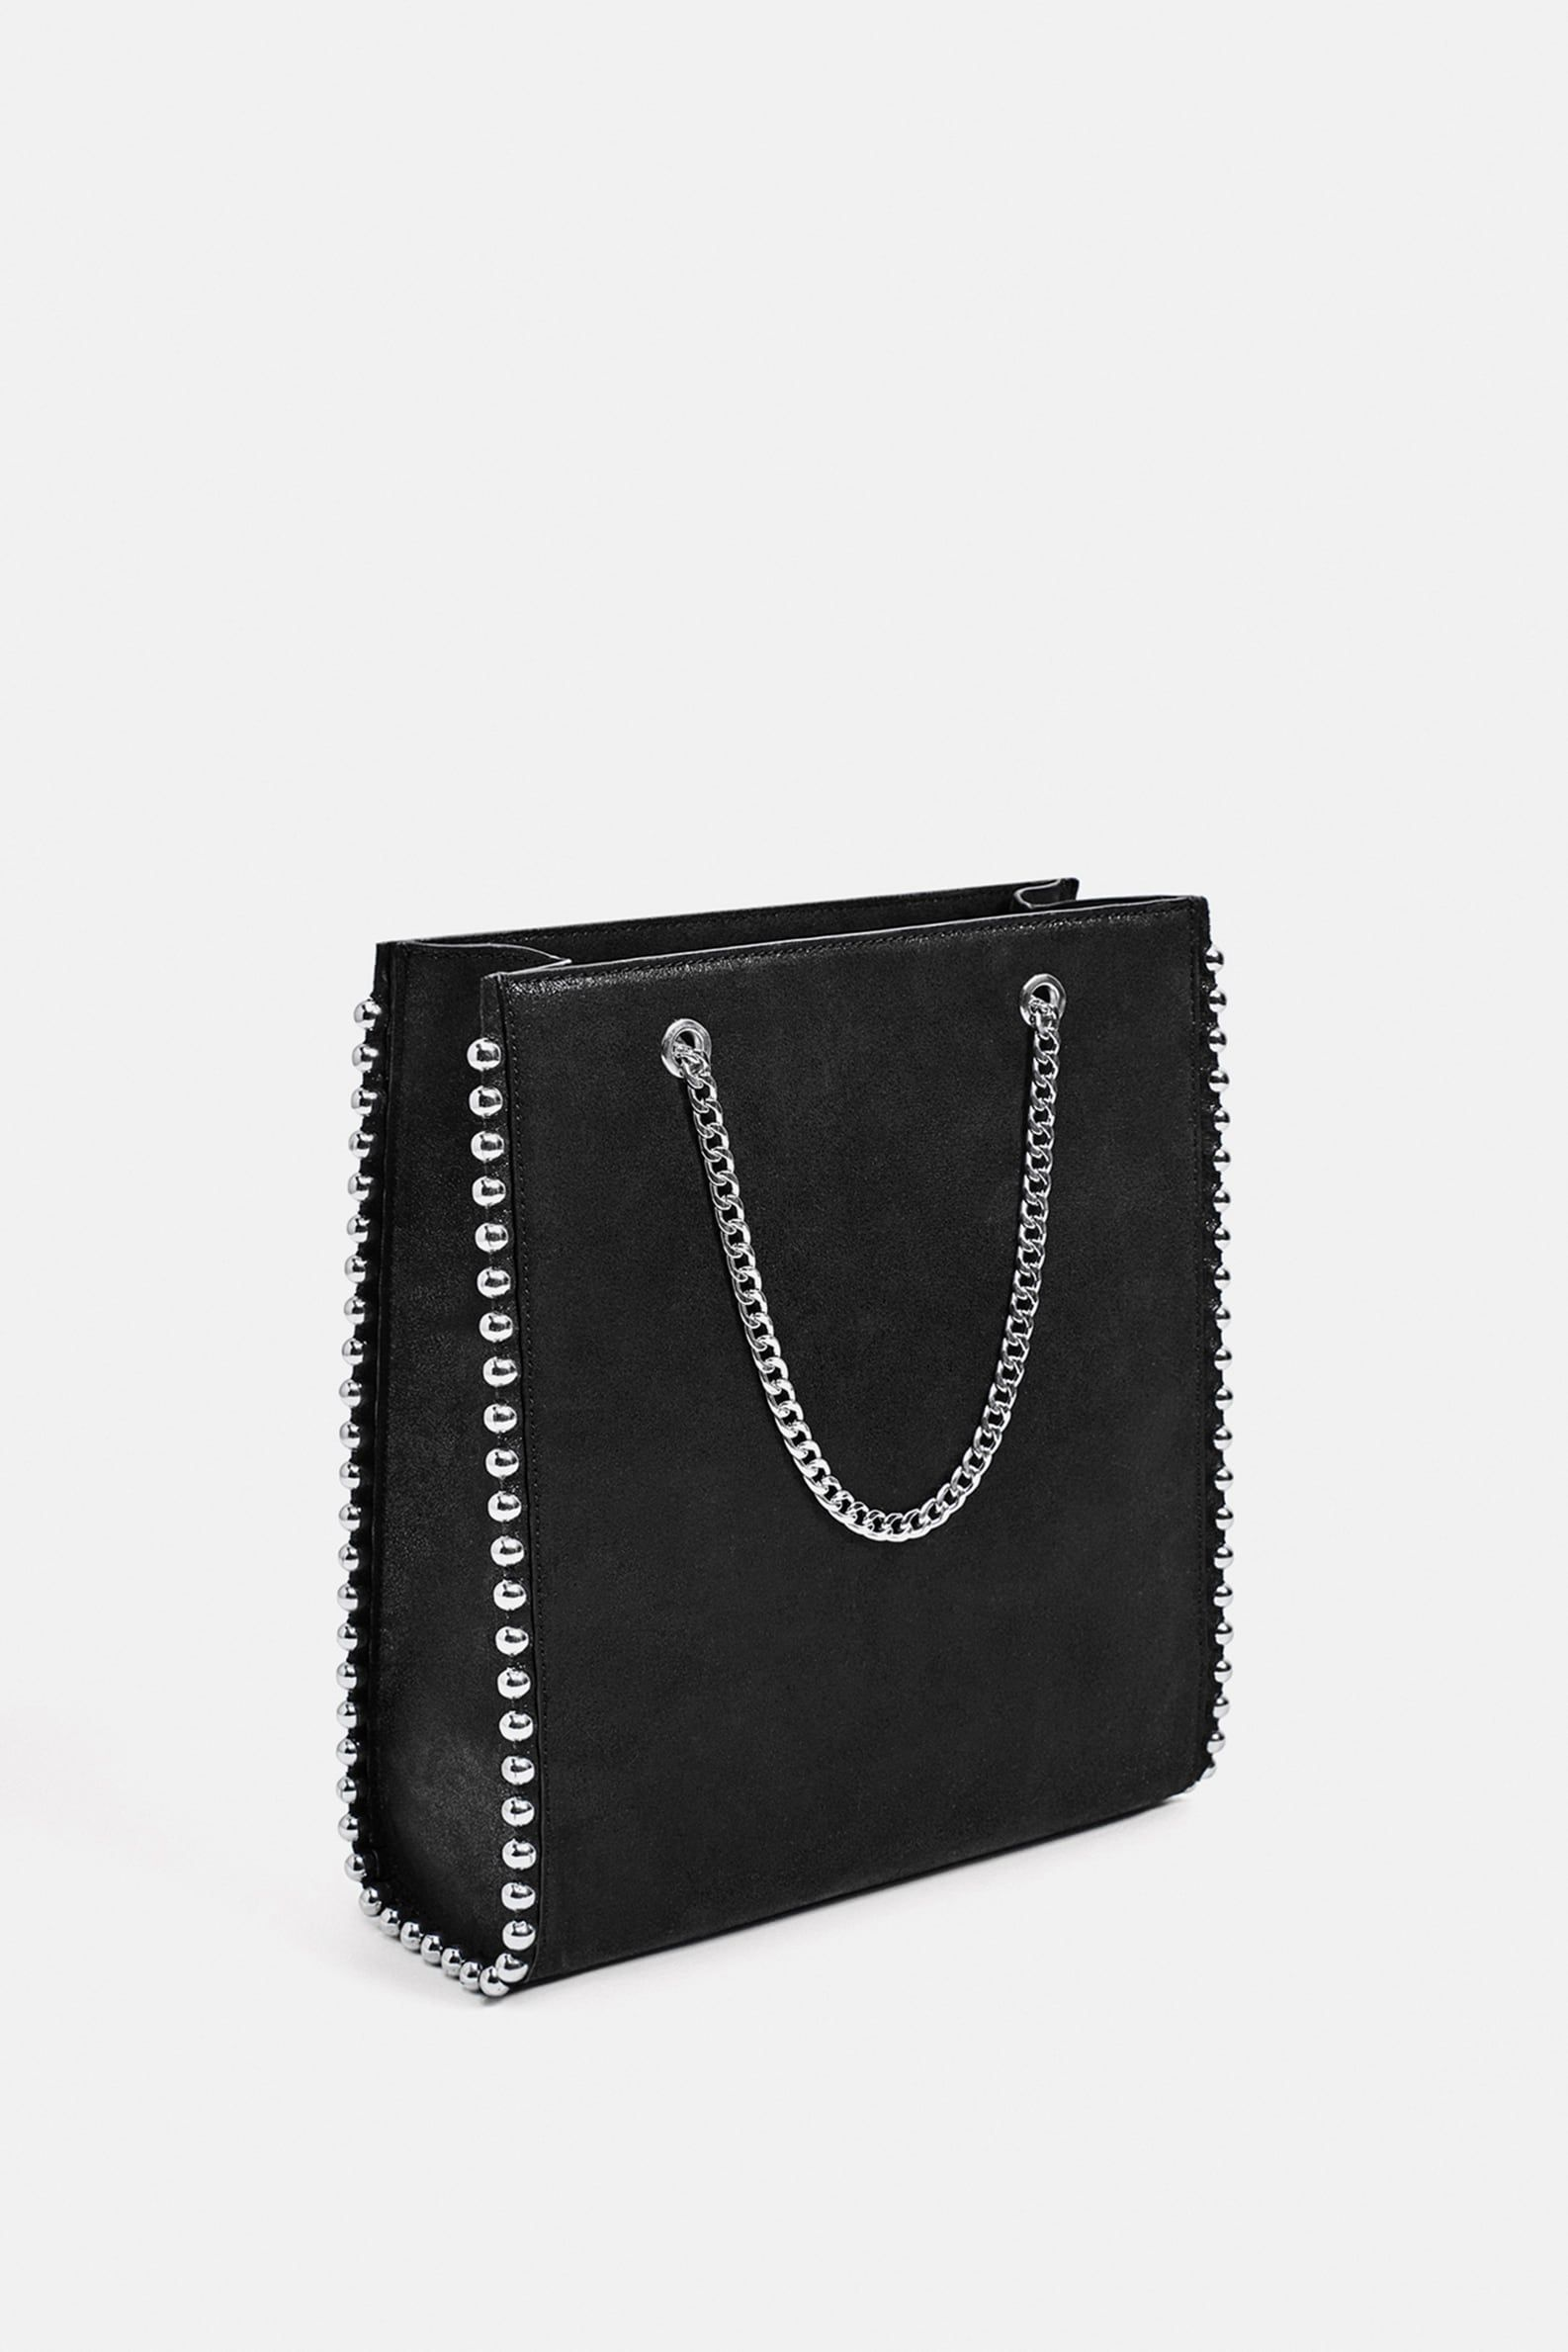 b08bc8ee2c9bf STUDDED TOTE BAG from Zara